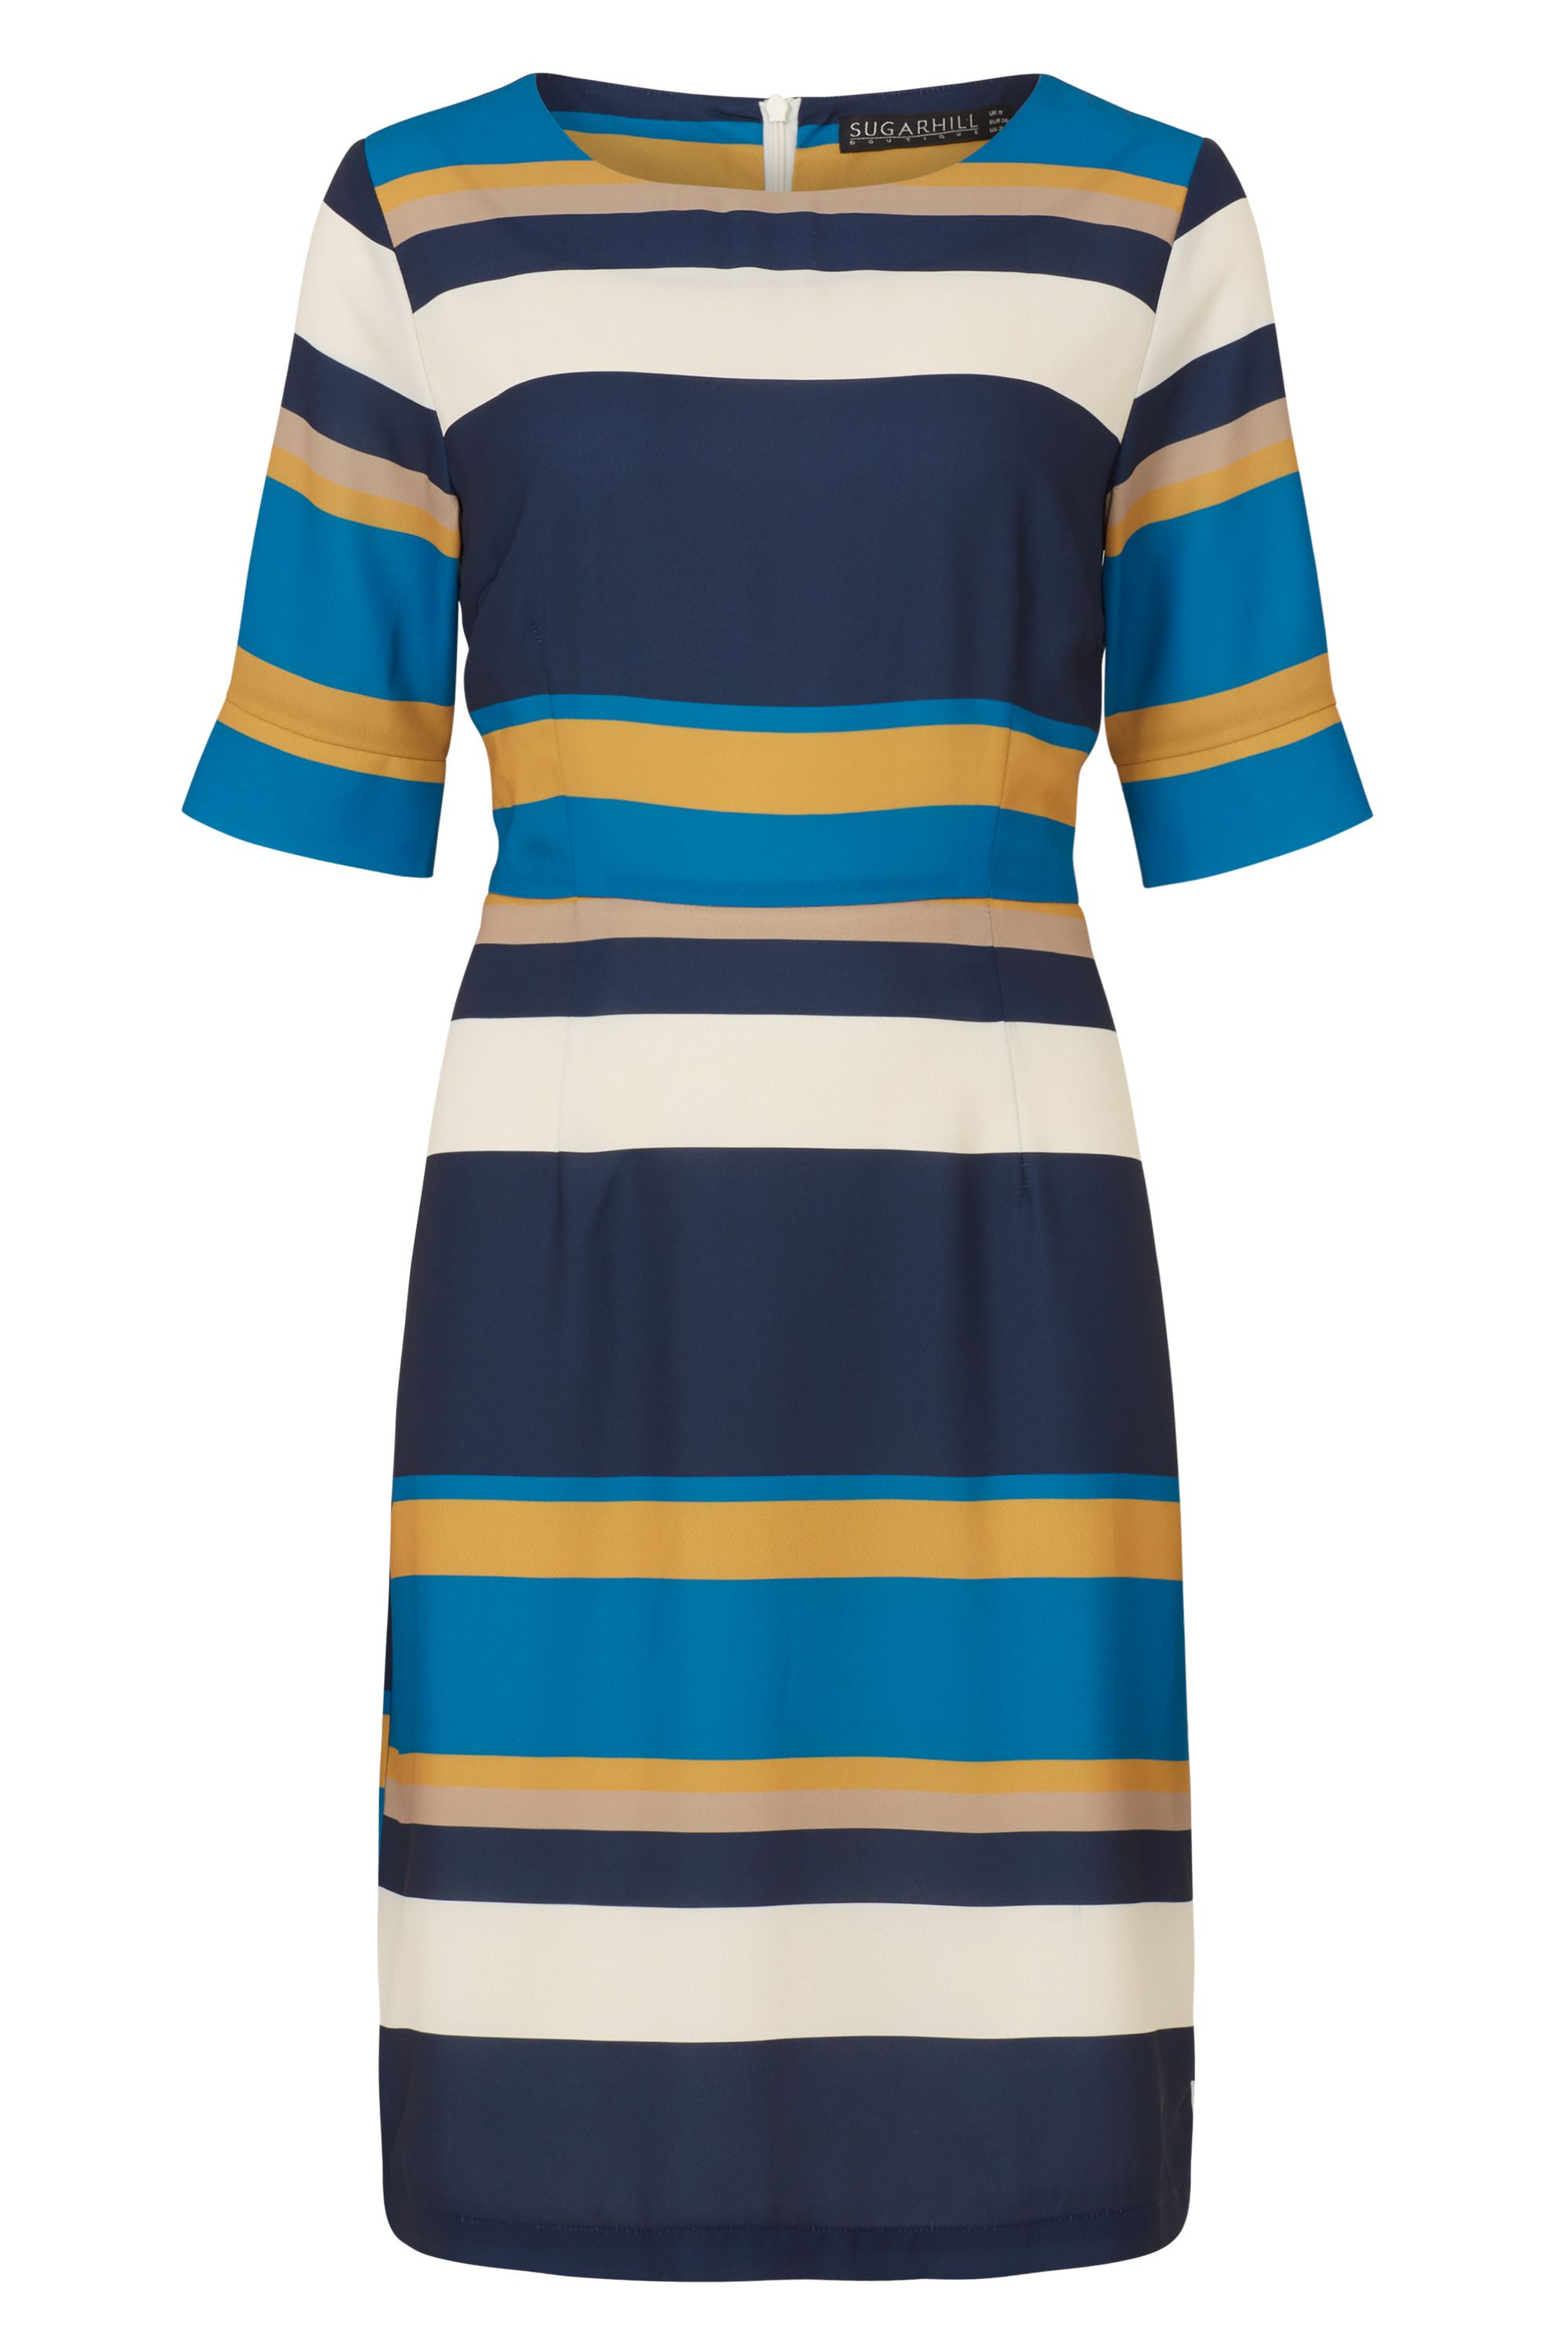 Sugarhill Boutique Harper Autumn Stripe Shift Dress, Multi-Coloured